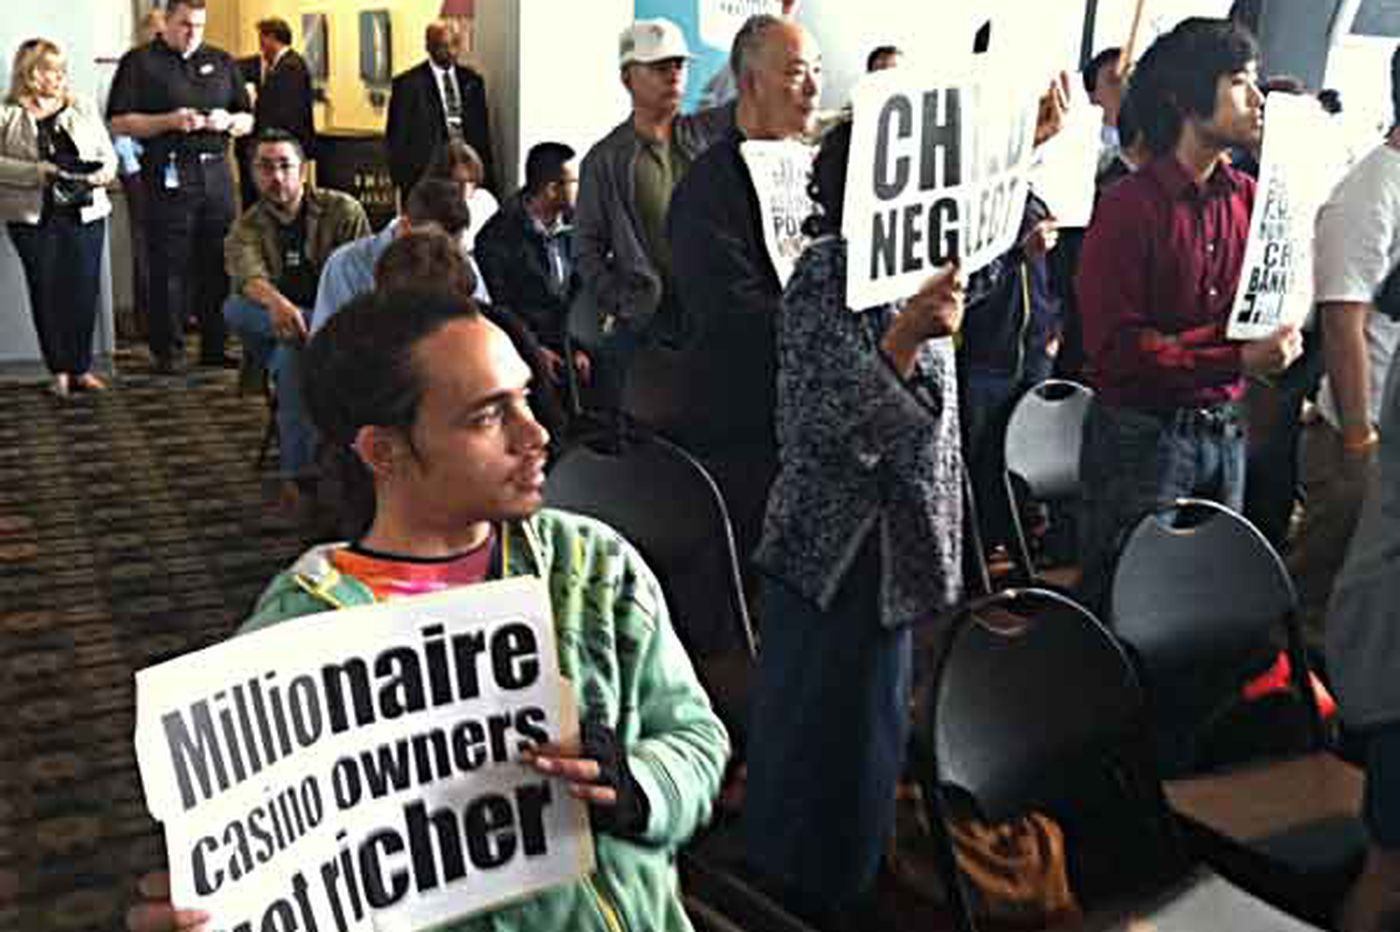 Many from Chinatown protest 2d Philly casino